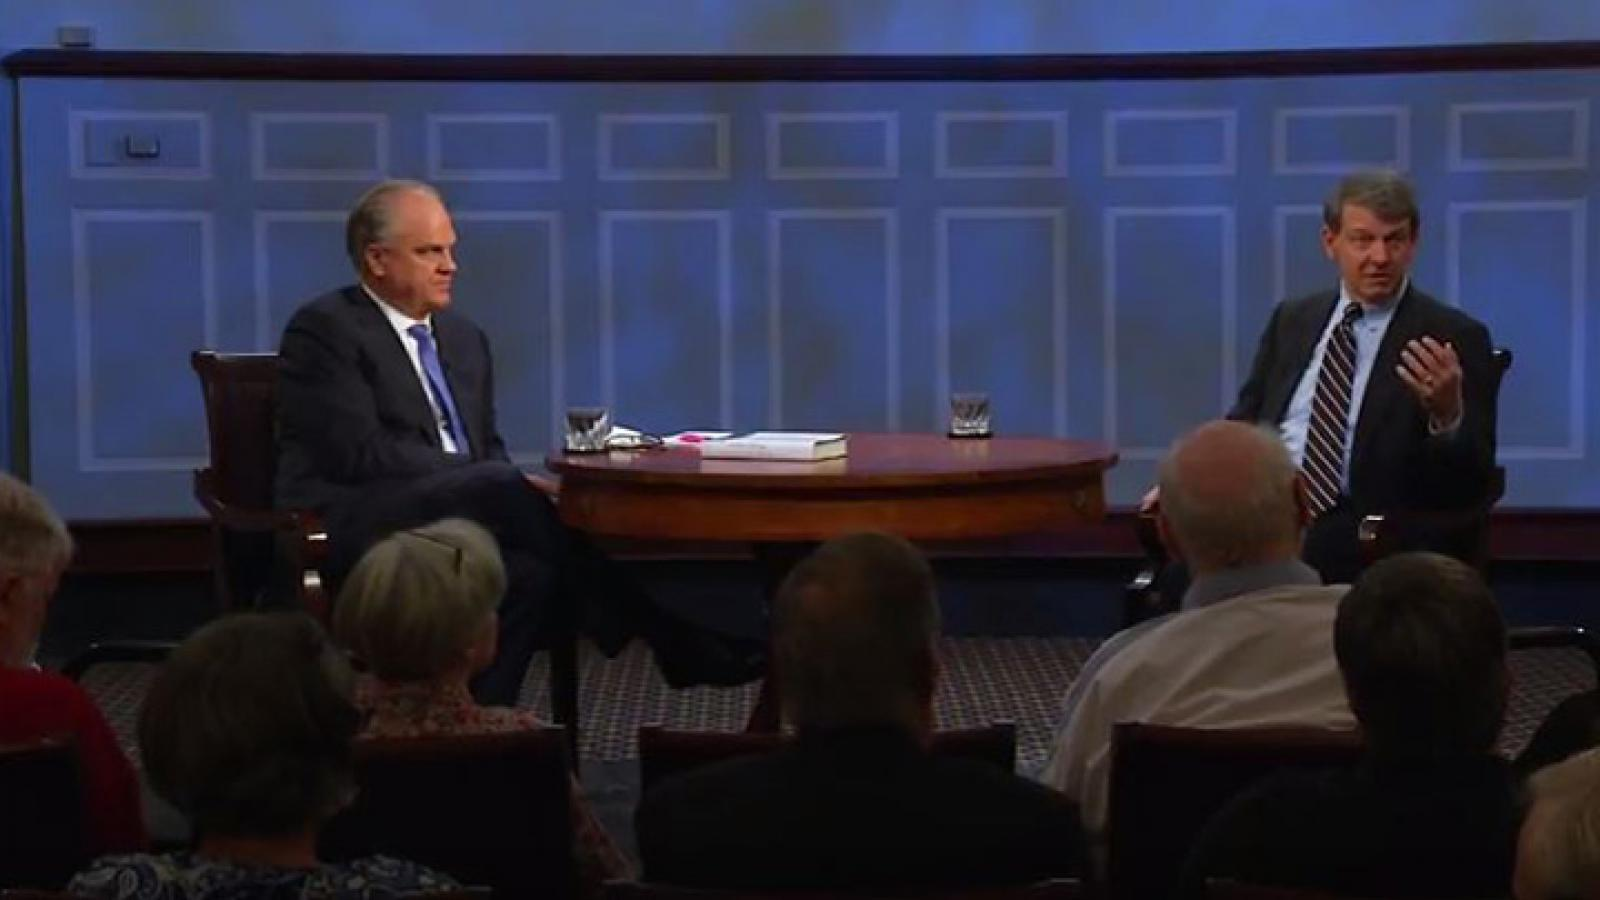 Russell Riley, an expert on the Clinton presidency, takes questions from the American Forum studio audience